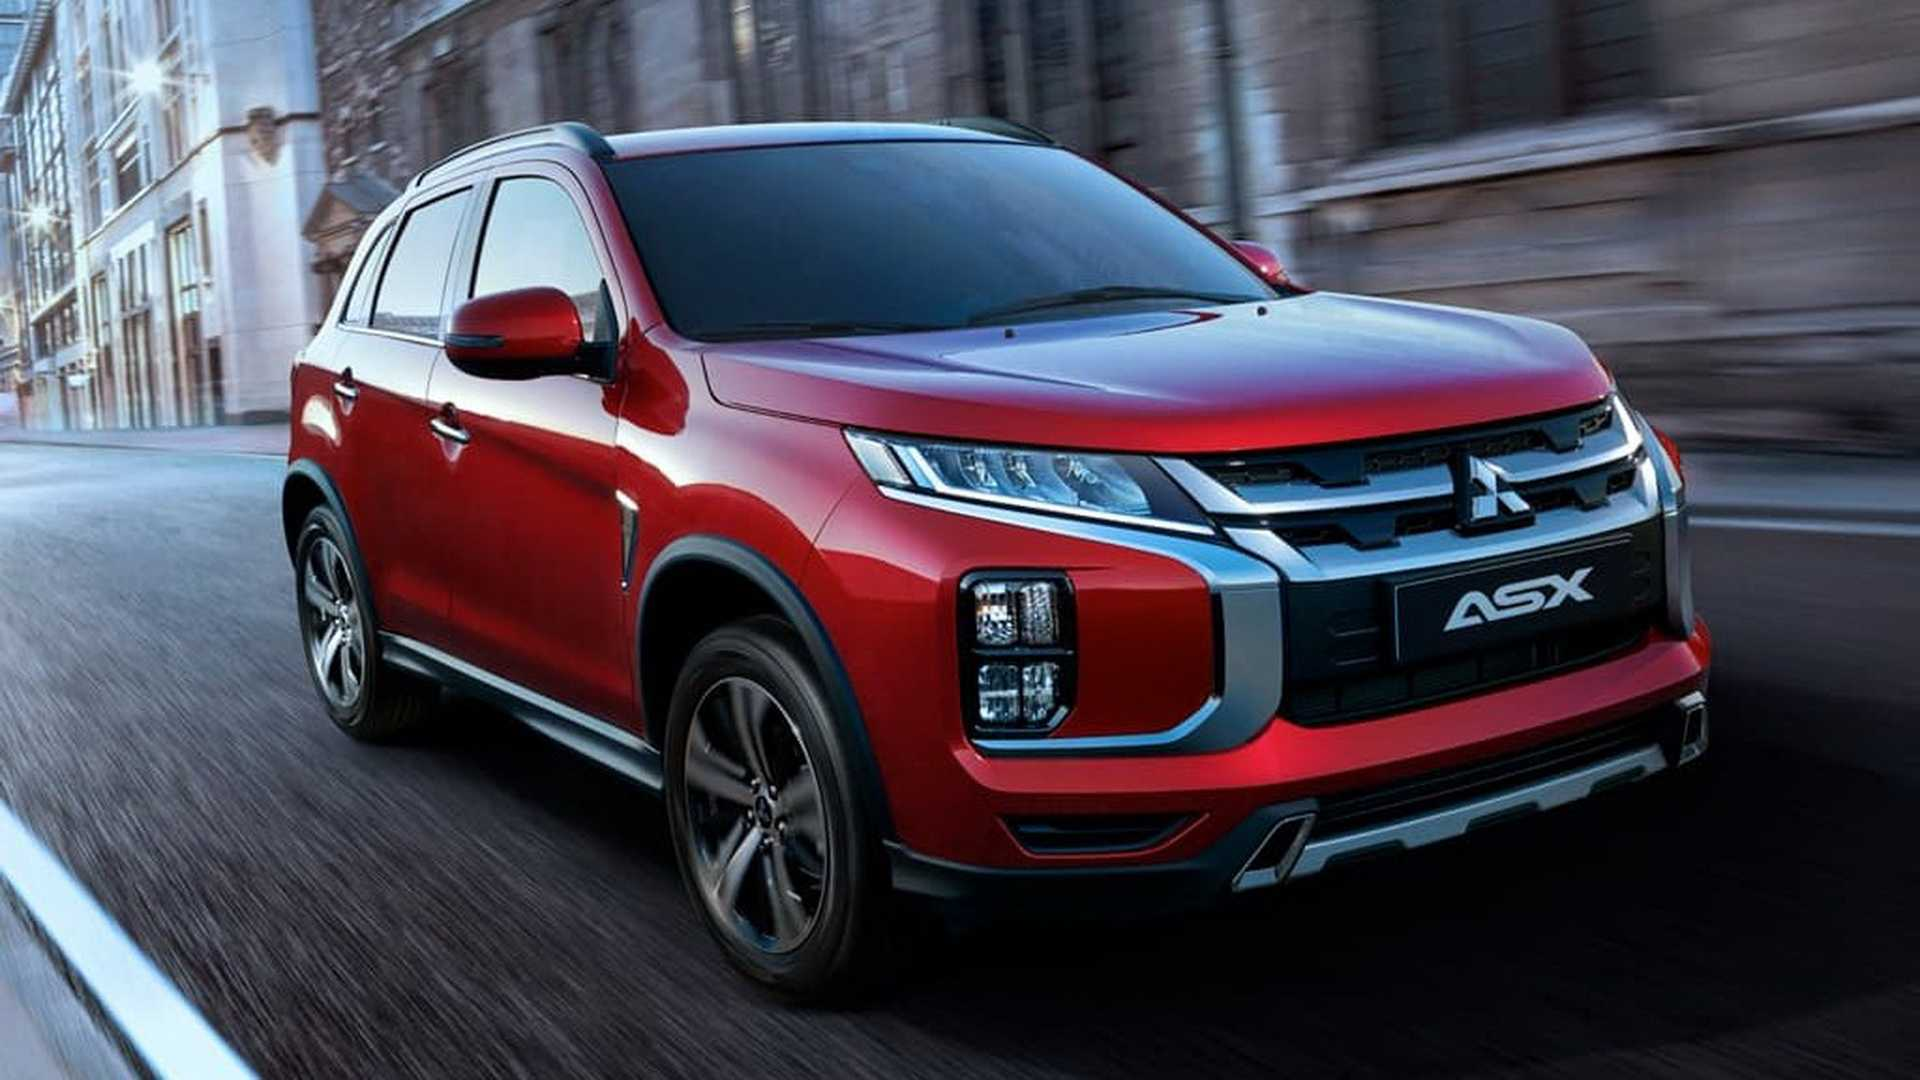 25 New Mitsubishi Asx 2020 Ficha Tecnica Pricing for Mitsubishi Asx 2020 Ficha Tecnica